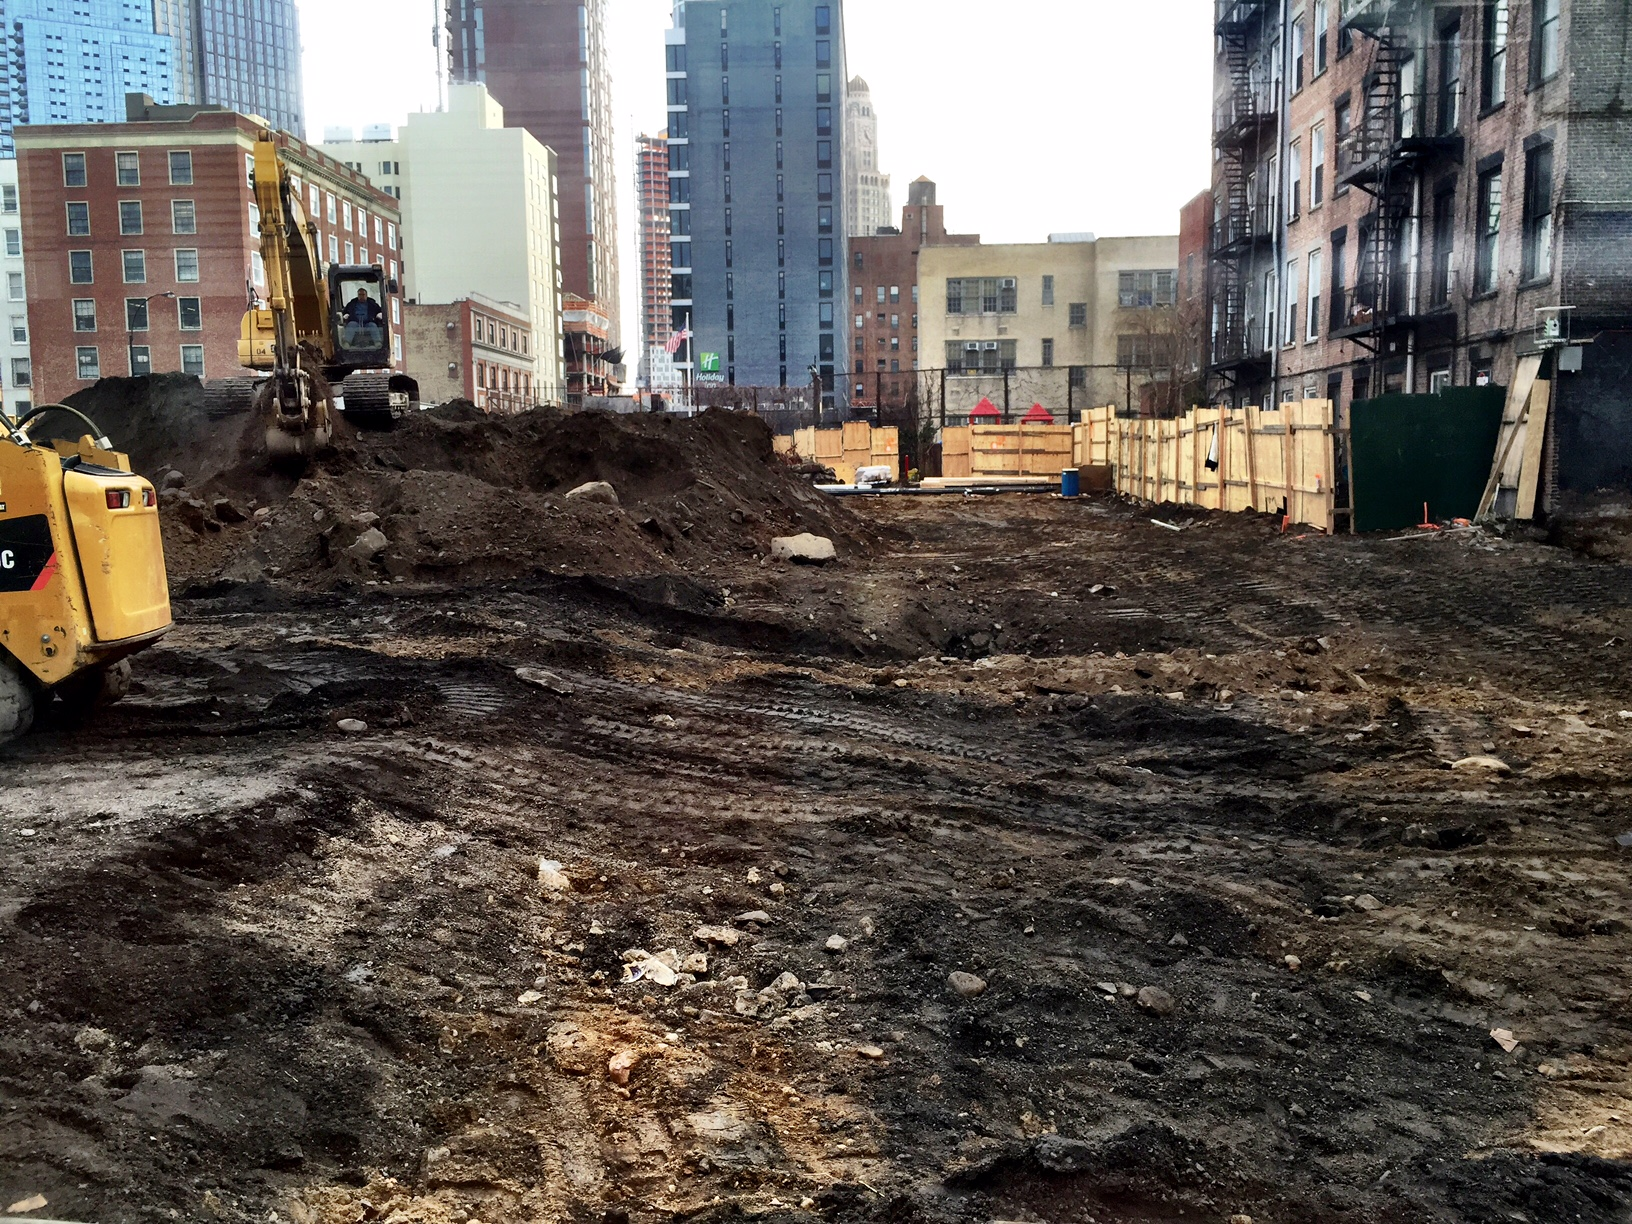 Work being done at 61 Bond Street in Brooklyn. Photo by Tectonic.